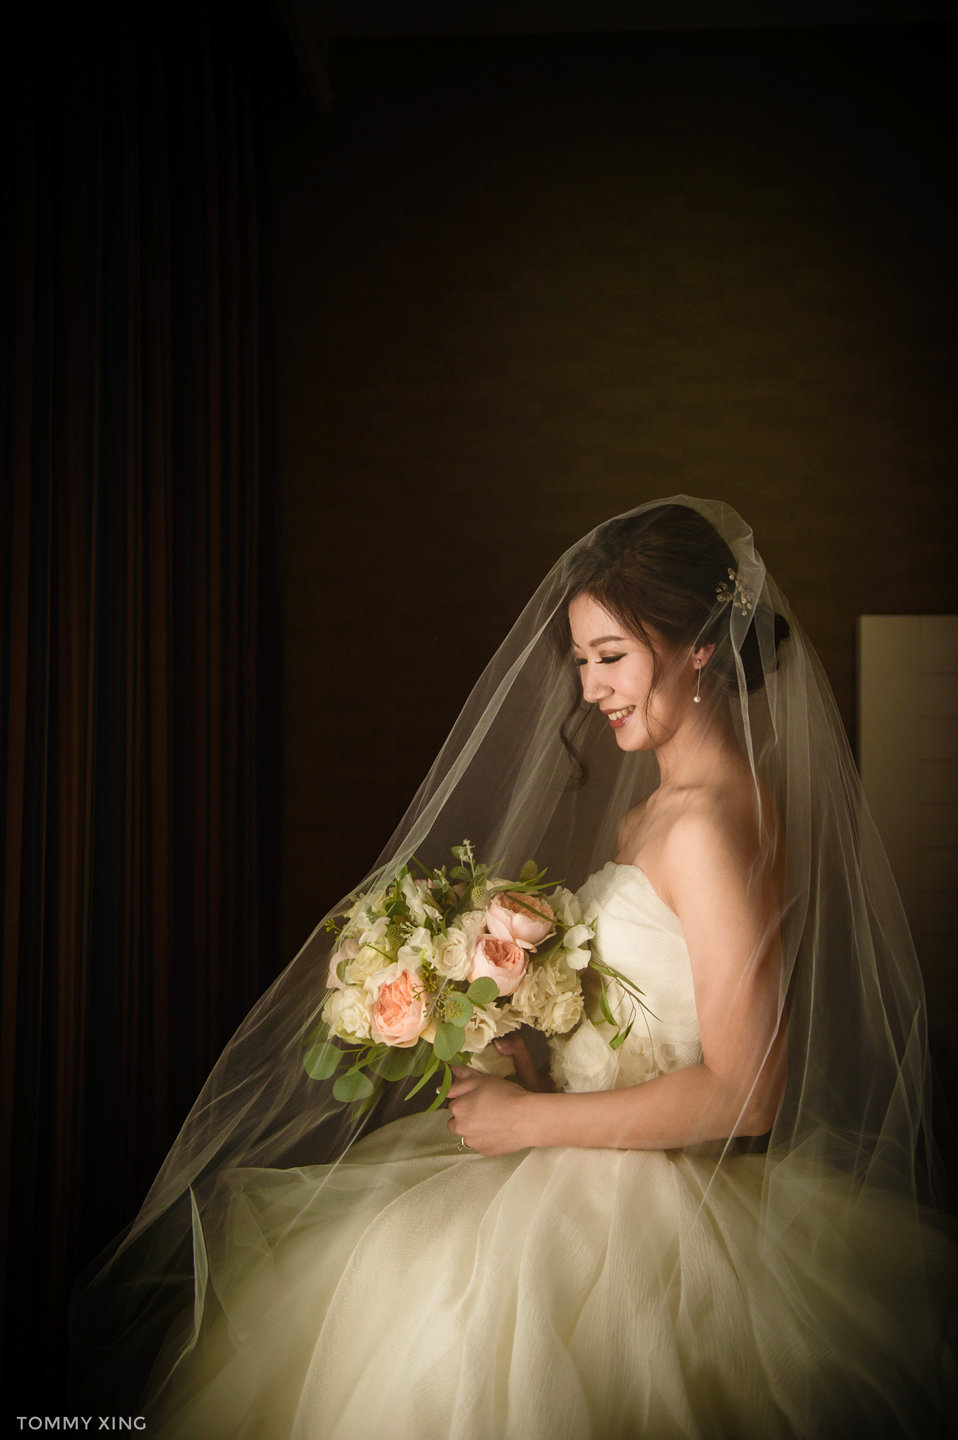 WAYFARERS CHAPEL WEDDING - Yaoyao & Yuanbo by Tommy Xing Photography 洛杉矶婚礼婚纱摄影 04.jpg